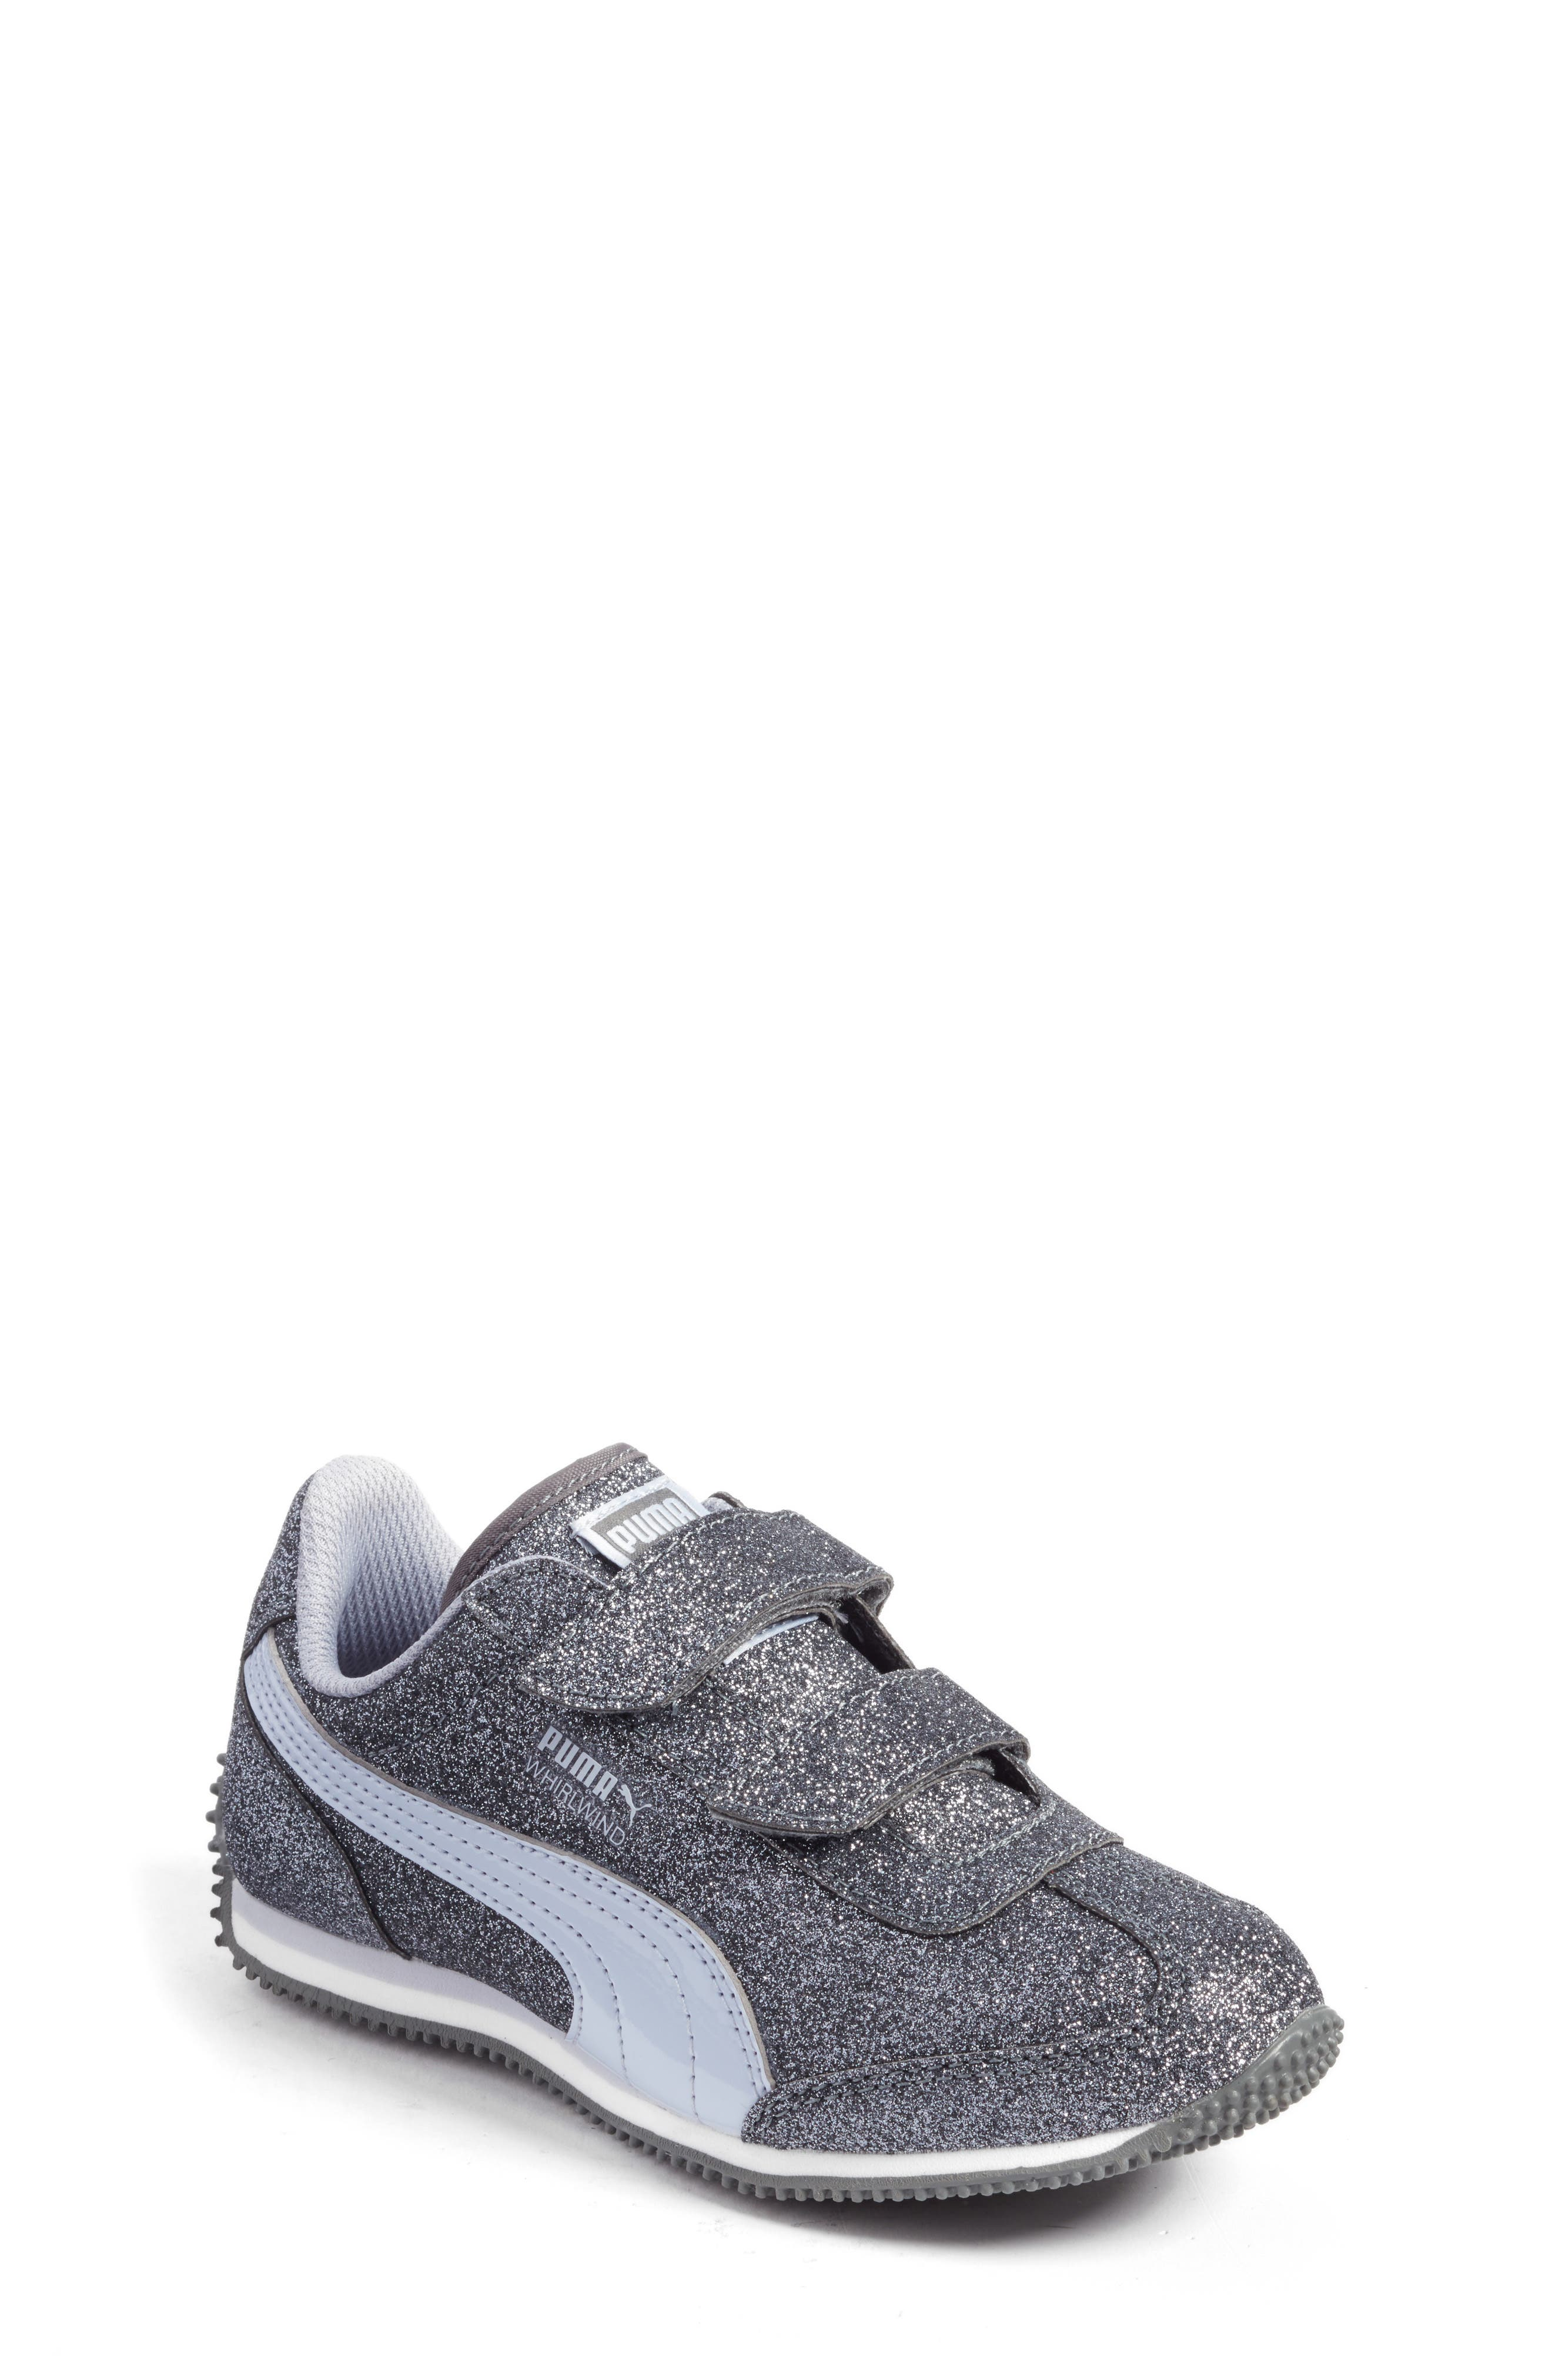 Alternate Image 1 Selected - PUMA Whirlwind Glitz Sneaker (Toddler, Little Kid & Big Kid)